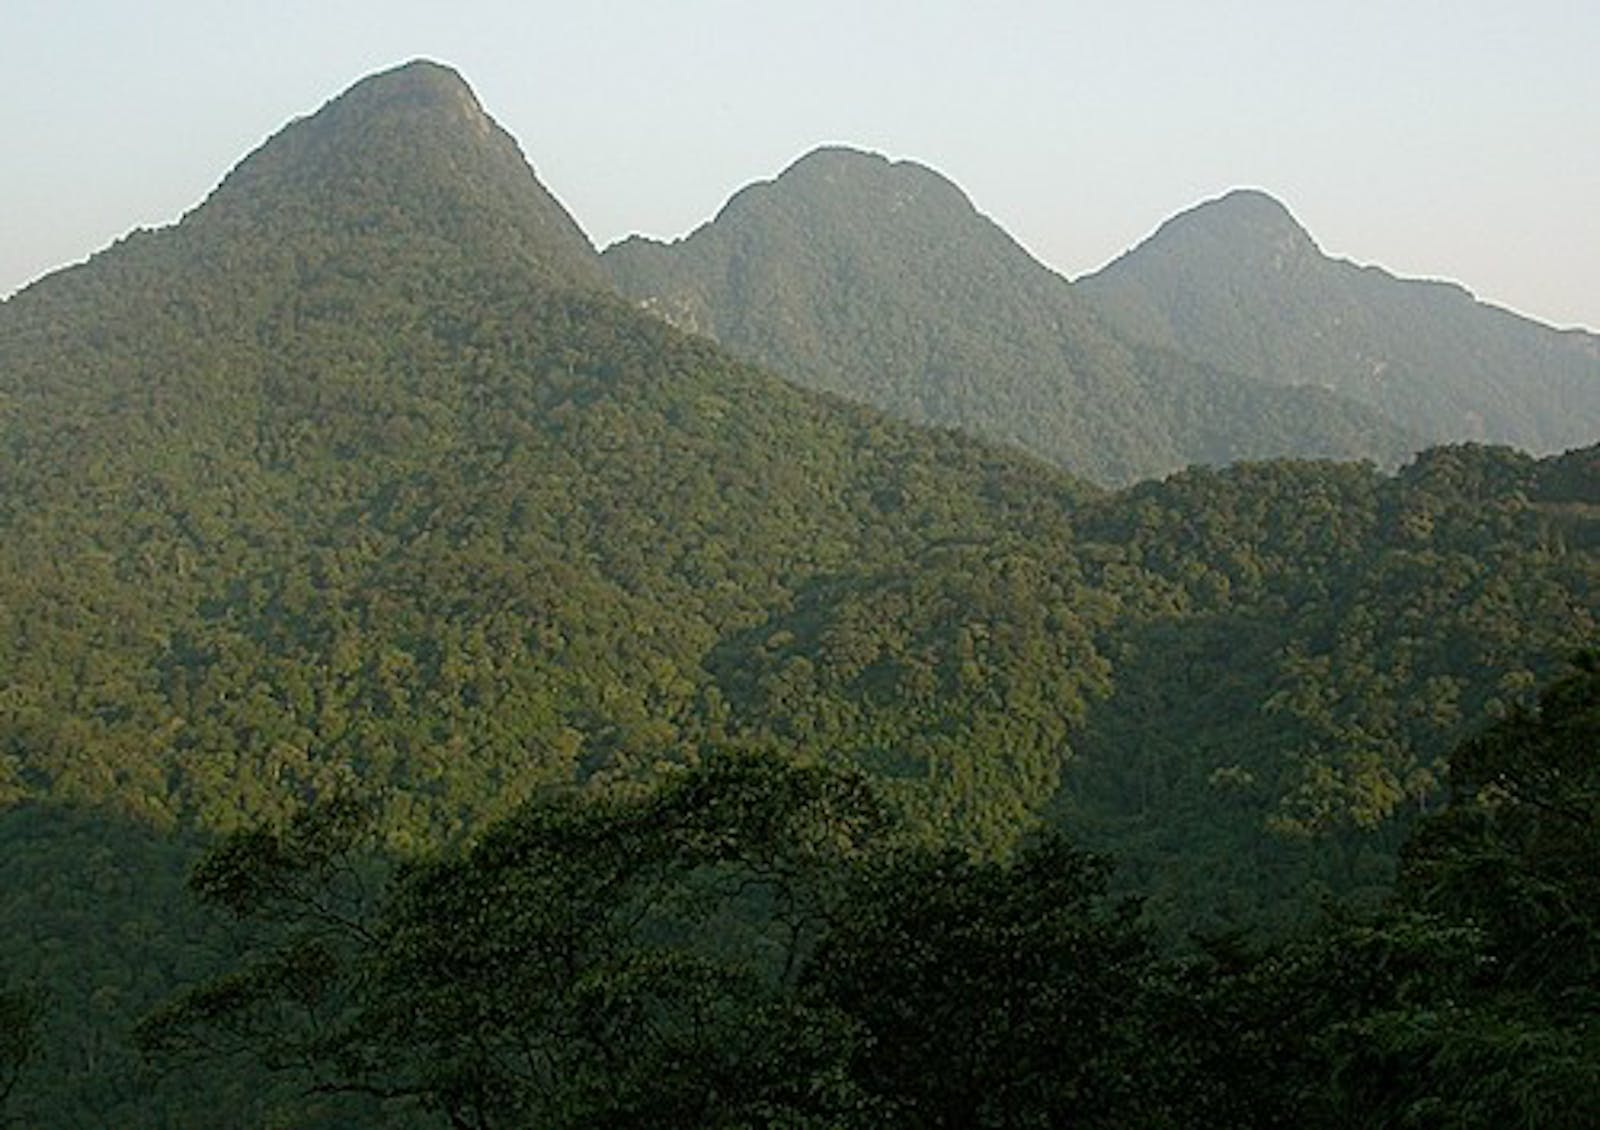 South China-Vietnam Subtropical Evergreen Forests